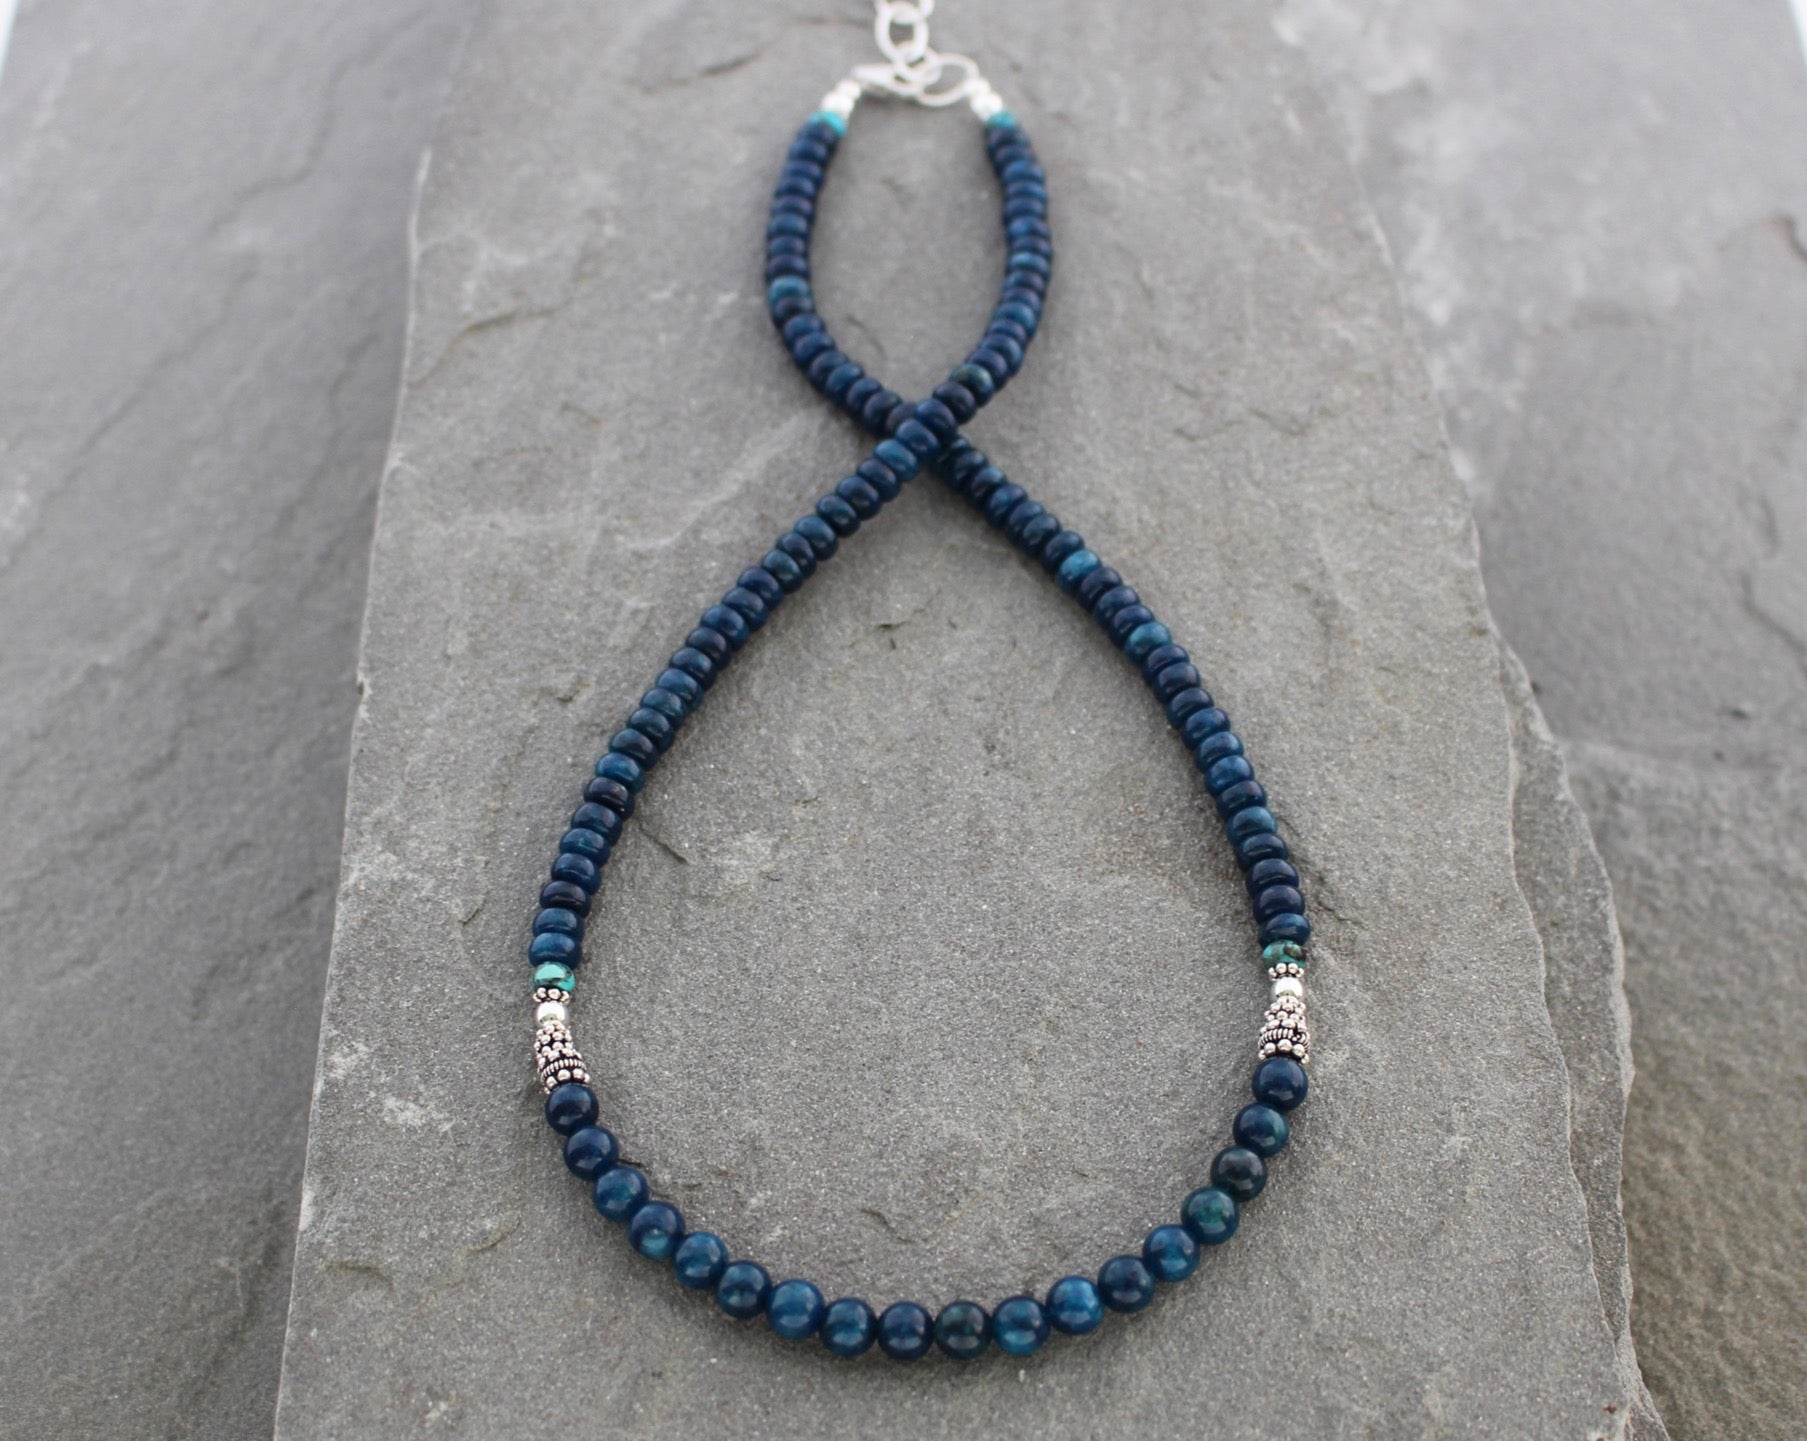 Teal blue Apatite and Turquoise beaded necklace with sterling silver.